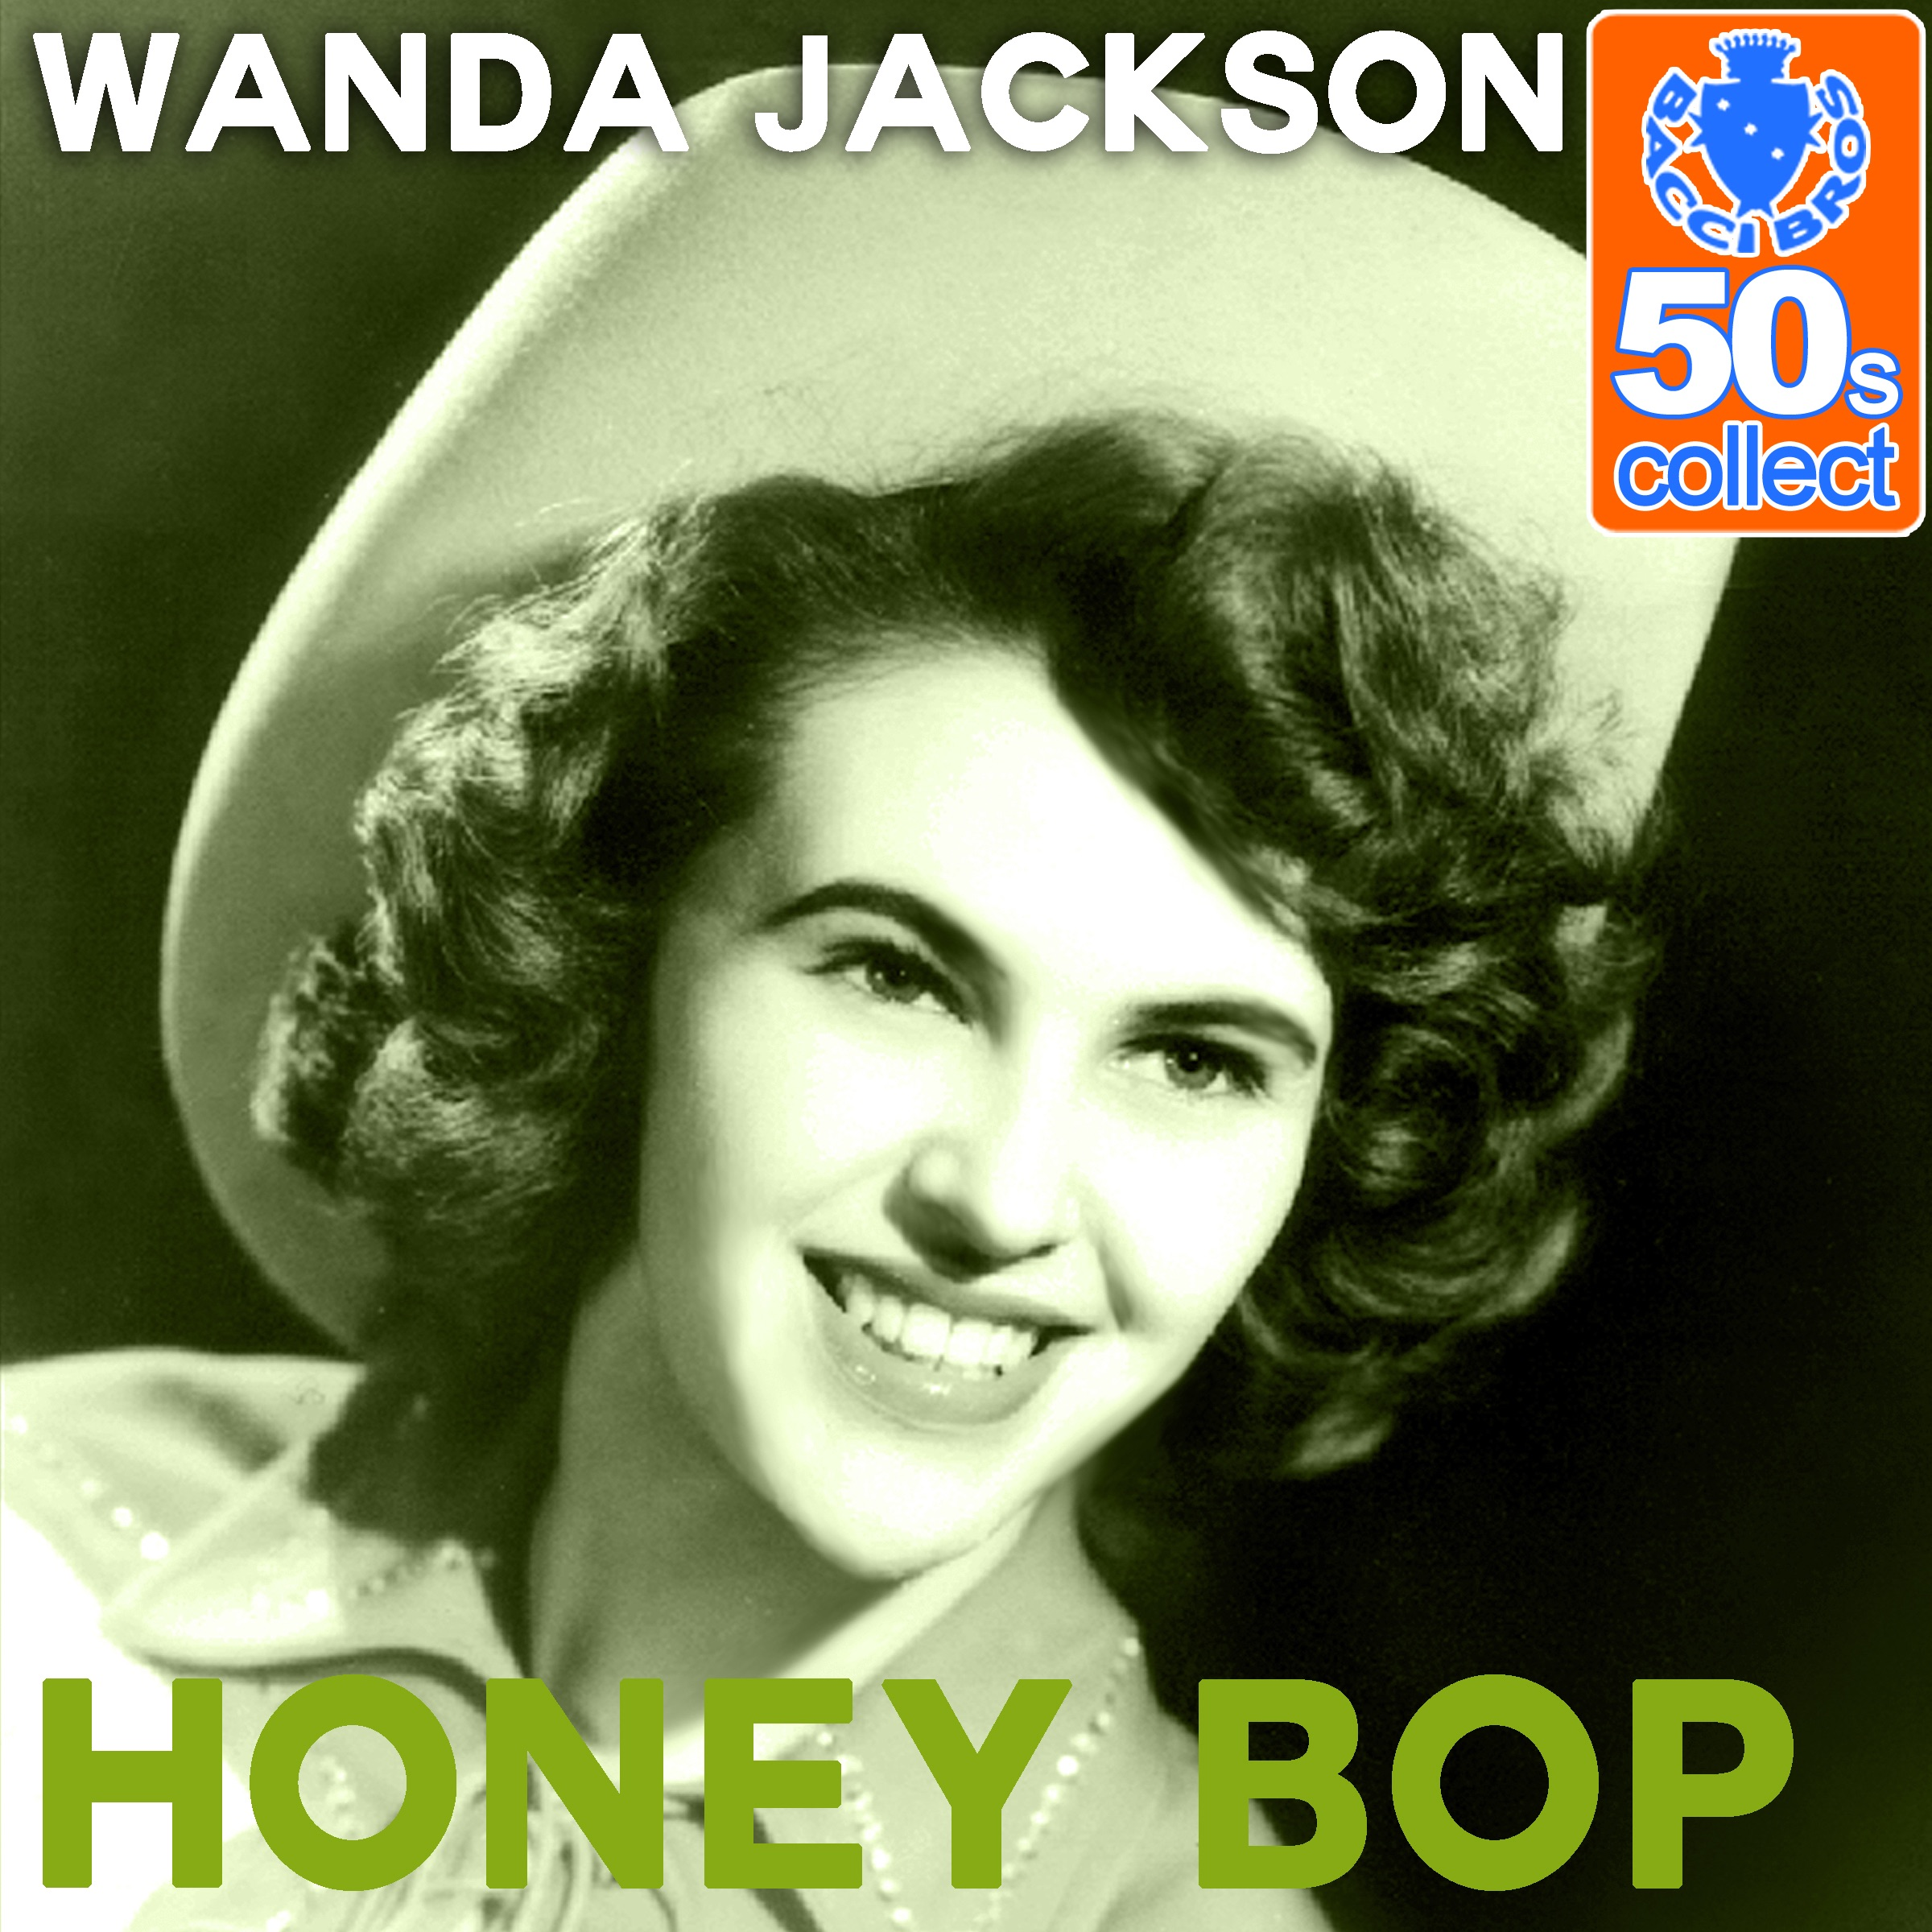 Honey Bop (Remastered) - Single